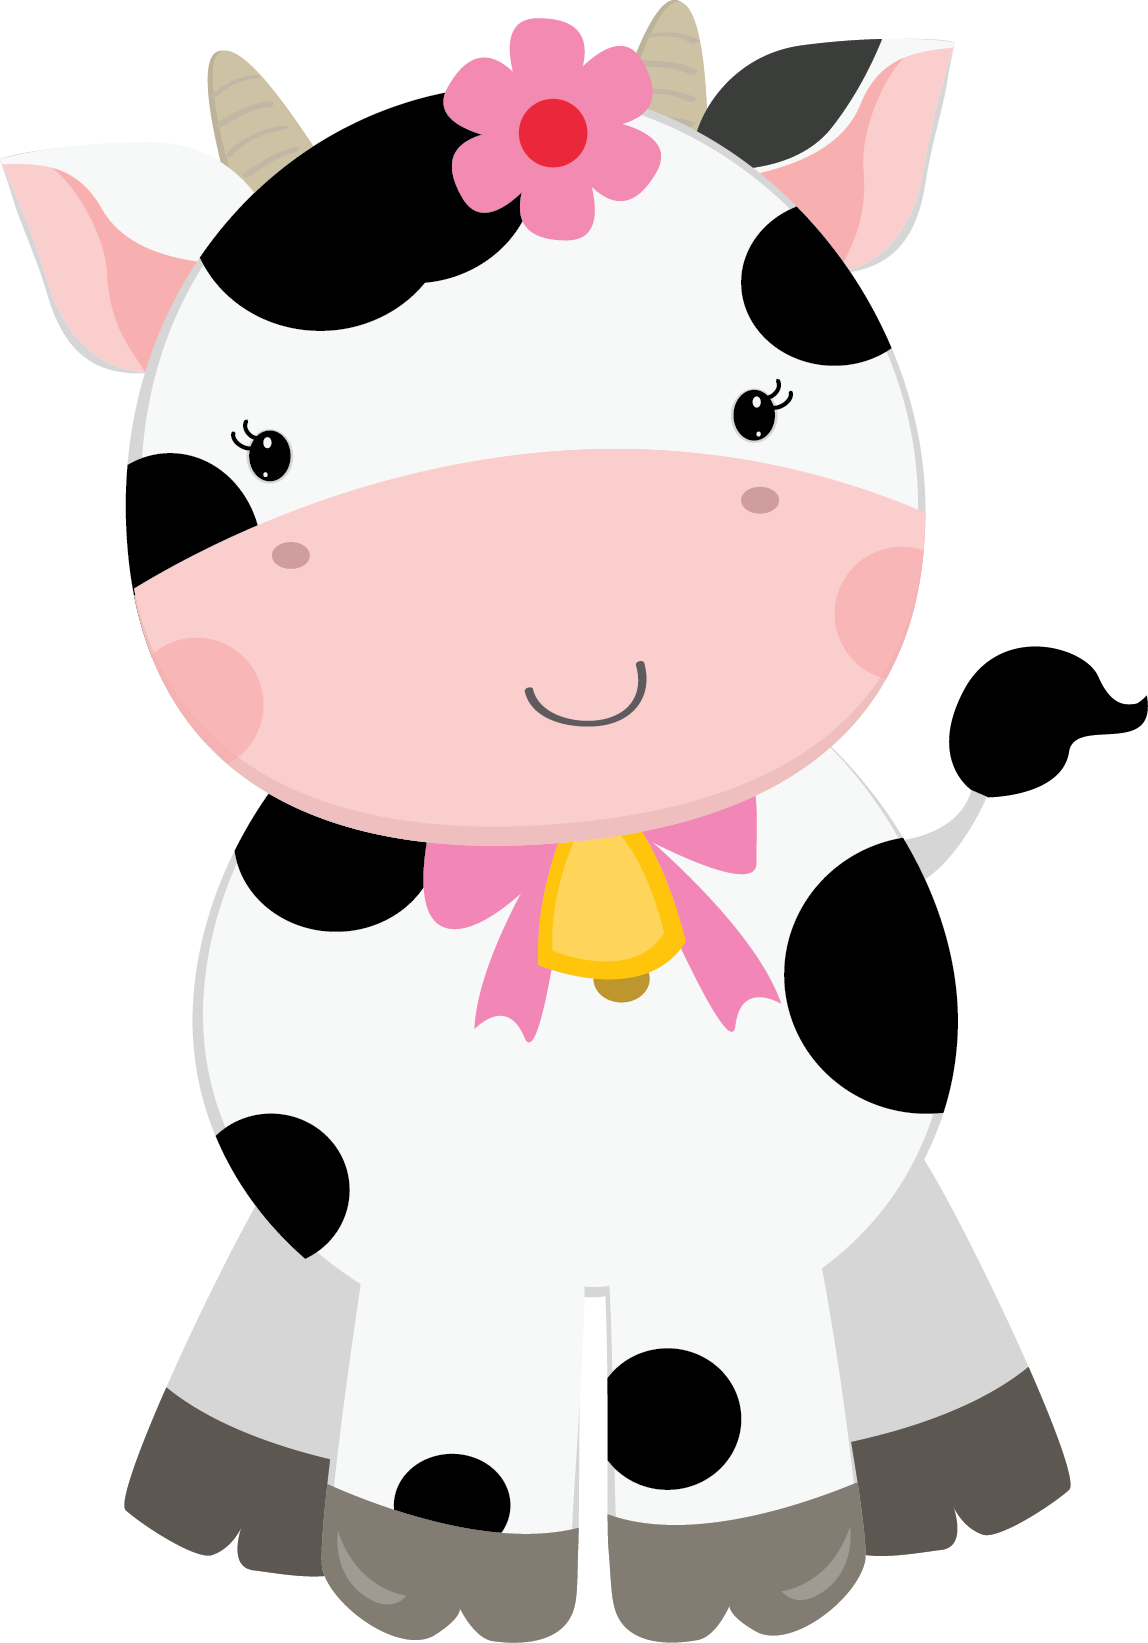 Cows clipart tooth. Cherry farm friends for